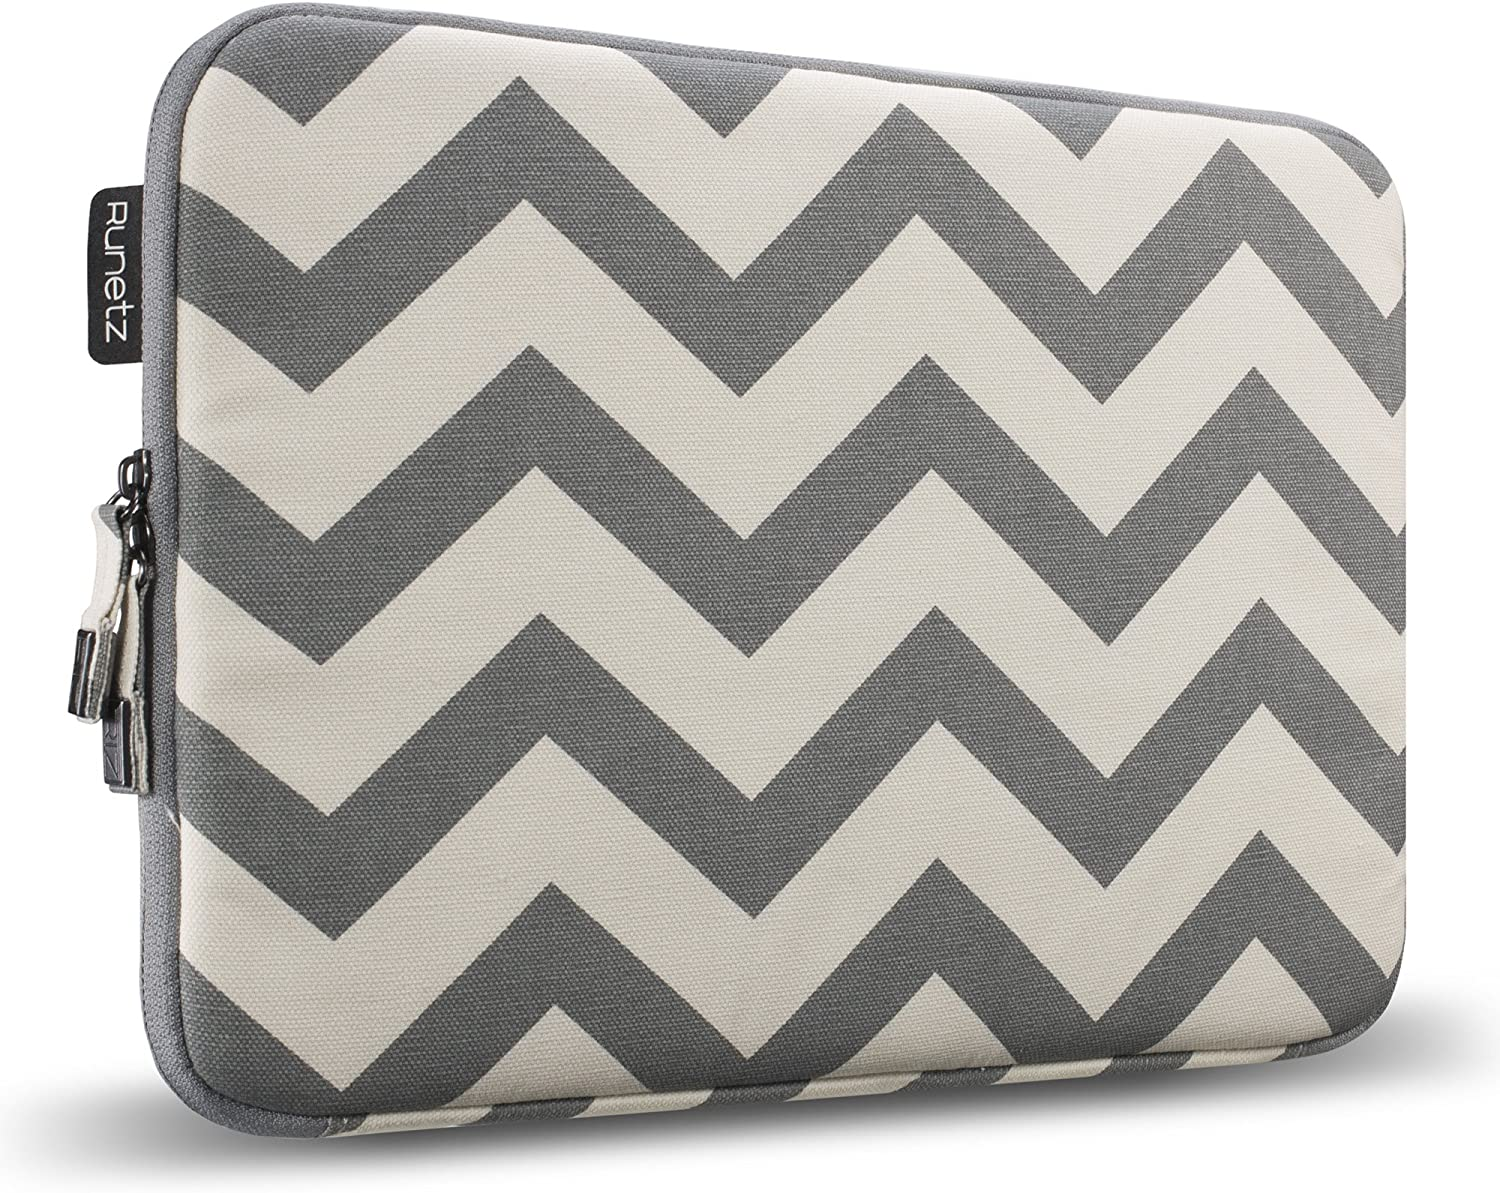 Runetz Sleeve for MacBook Pro 15 inch Sleeve Soft Laptop Sleeve 15 inch Notebook Computer Bag Protective Case Cover with Zipper, Chevron Gray